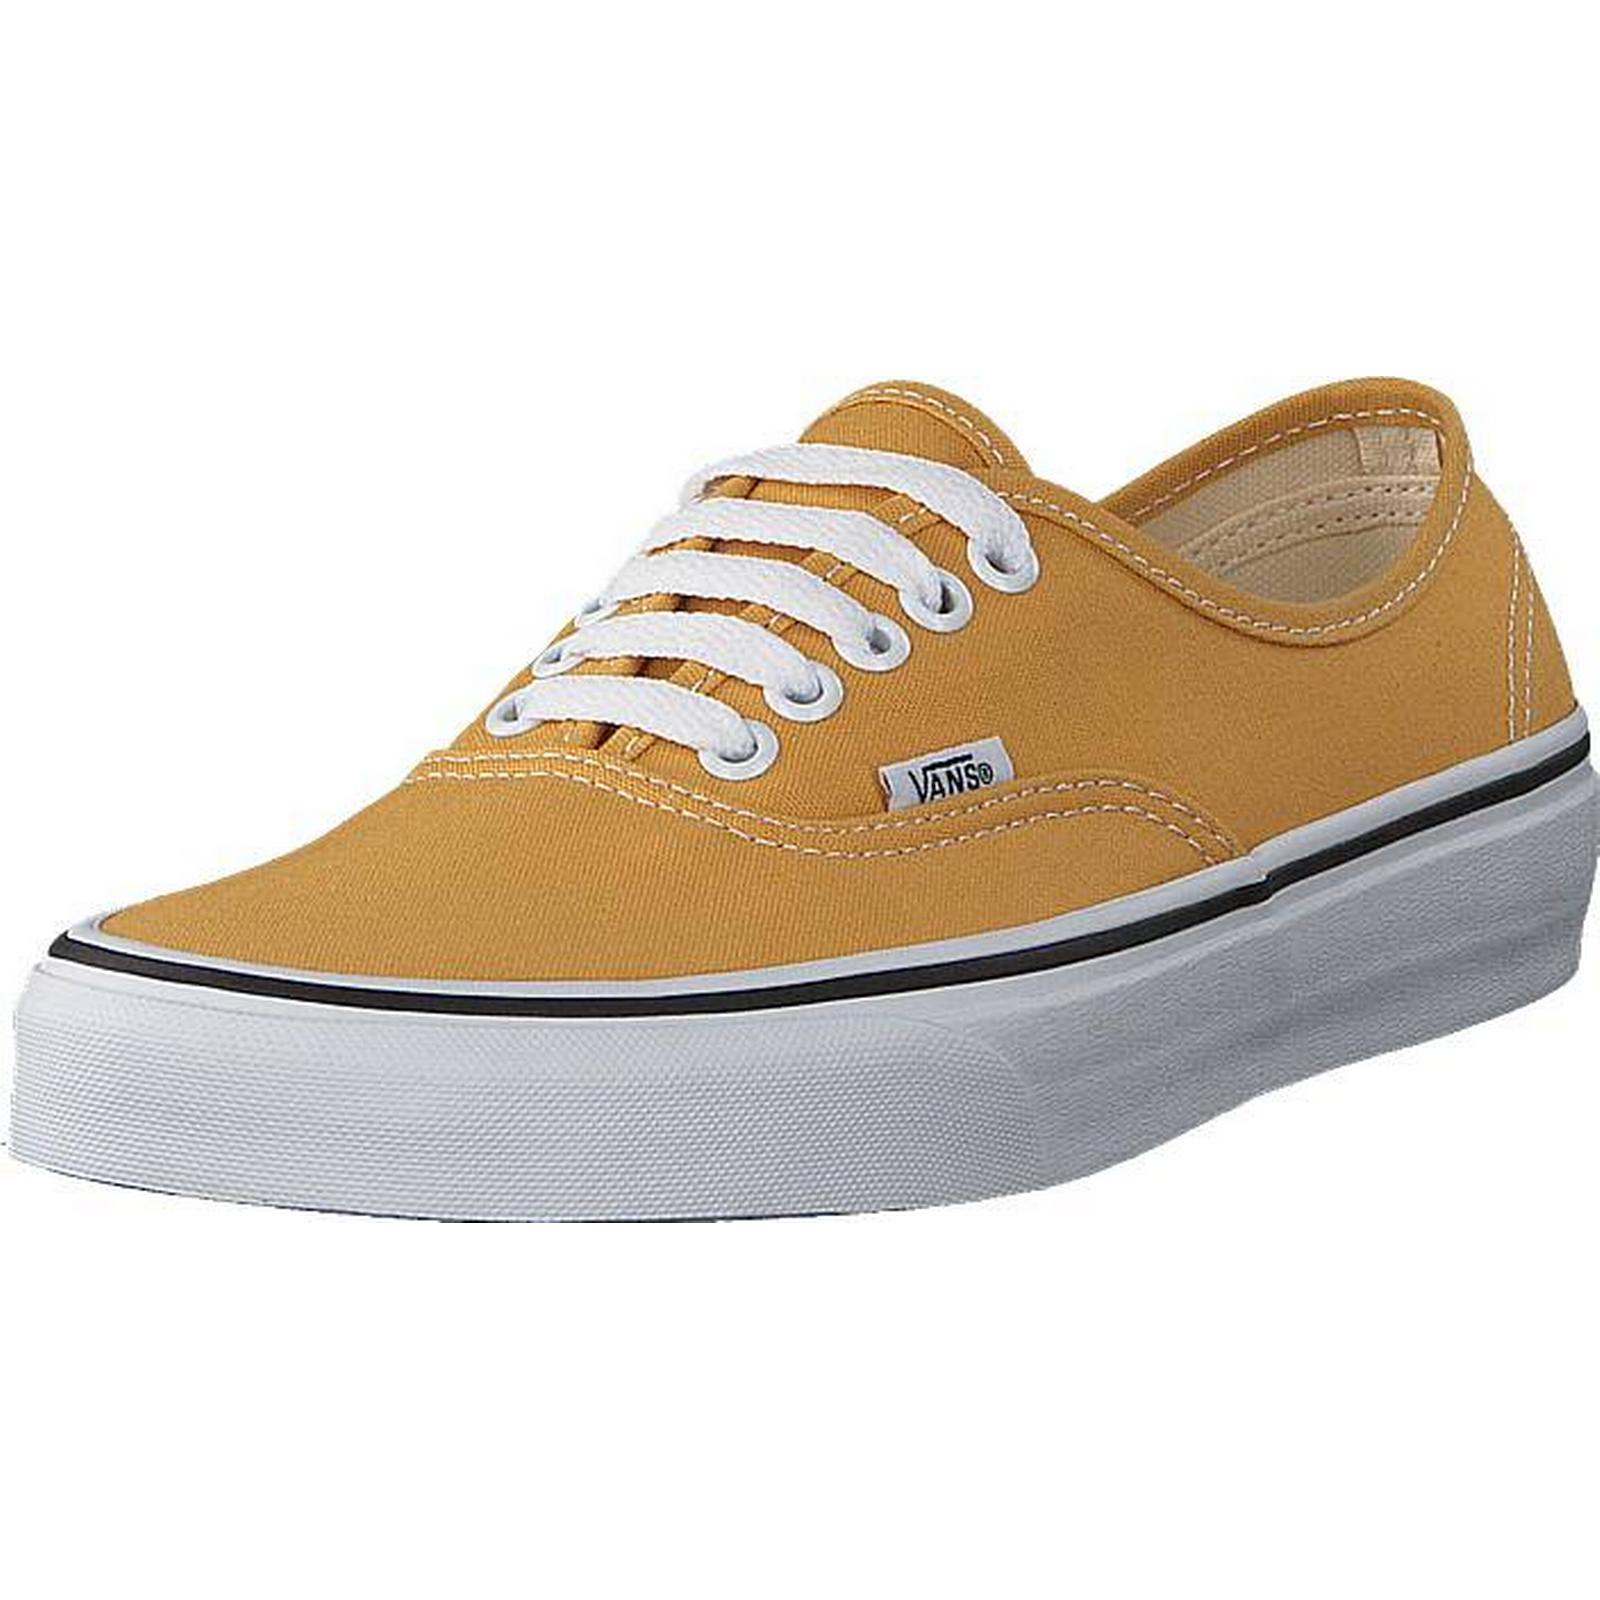 Vans Ua Authentic Ochre/true White, White, Ochre/true Shoes, Trainers & Sport Shoes , Low-top Trainers, Brown, Unisex, 44 165f0d